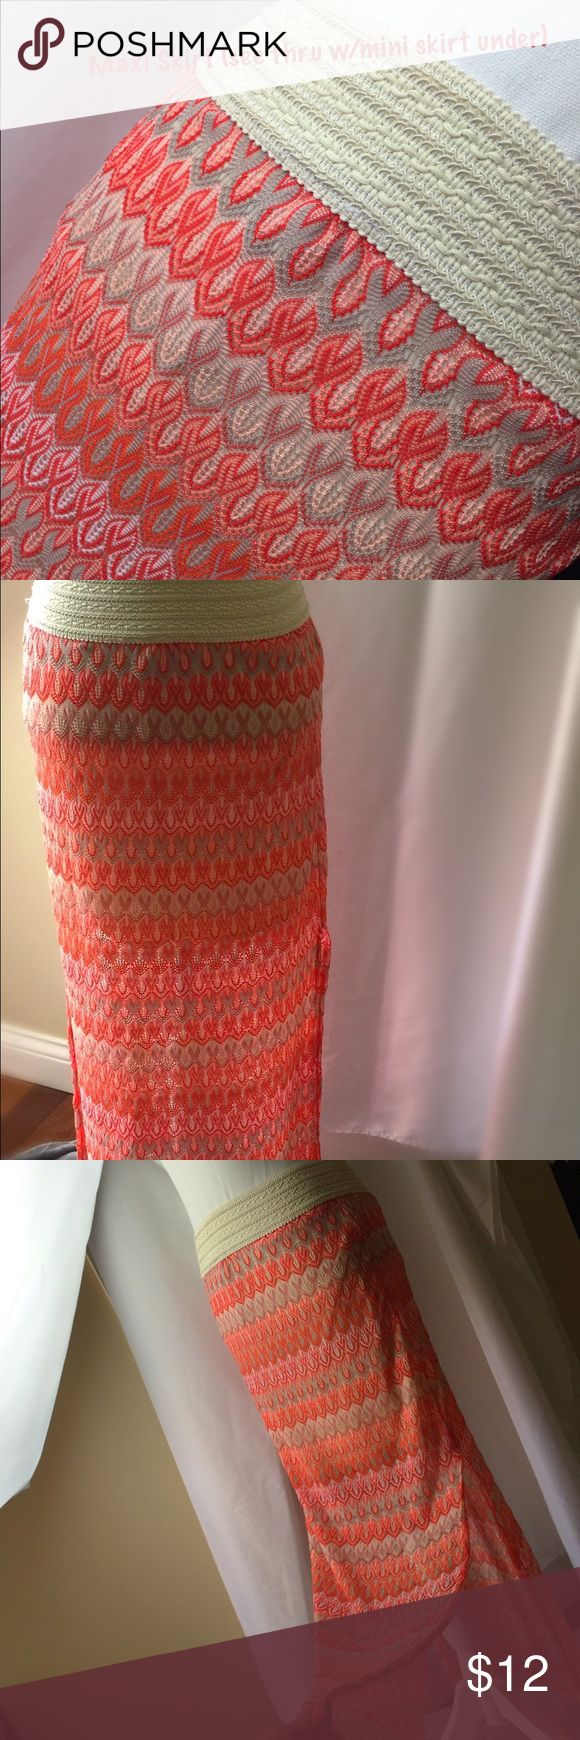 """CUTE!! MAXI SKIRT-see thru w/mini skirt underneath Joe B Maxi Skirt. Wide off white/cream stretchy elastic waist band. Never worn.  Gorgeous colors (orange, peach, tan, cream).  Slits on both sides (not all the way up).  Transparent with mini skirt underneath (attached) for super cute look.  Material is thin with small """"holes"""" where it keeps you cool in summer.  Great for beach, vacation, dress up or down. Size Medium. Joe B Skirts Maxi"""